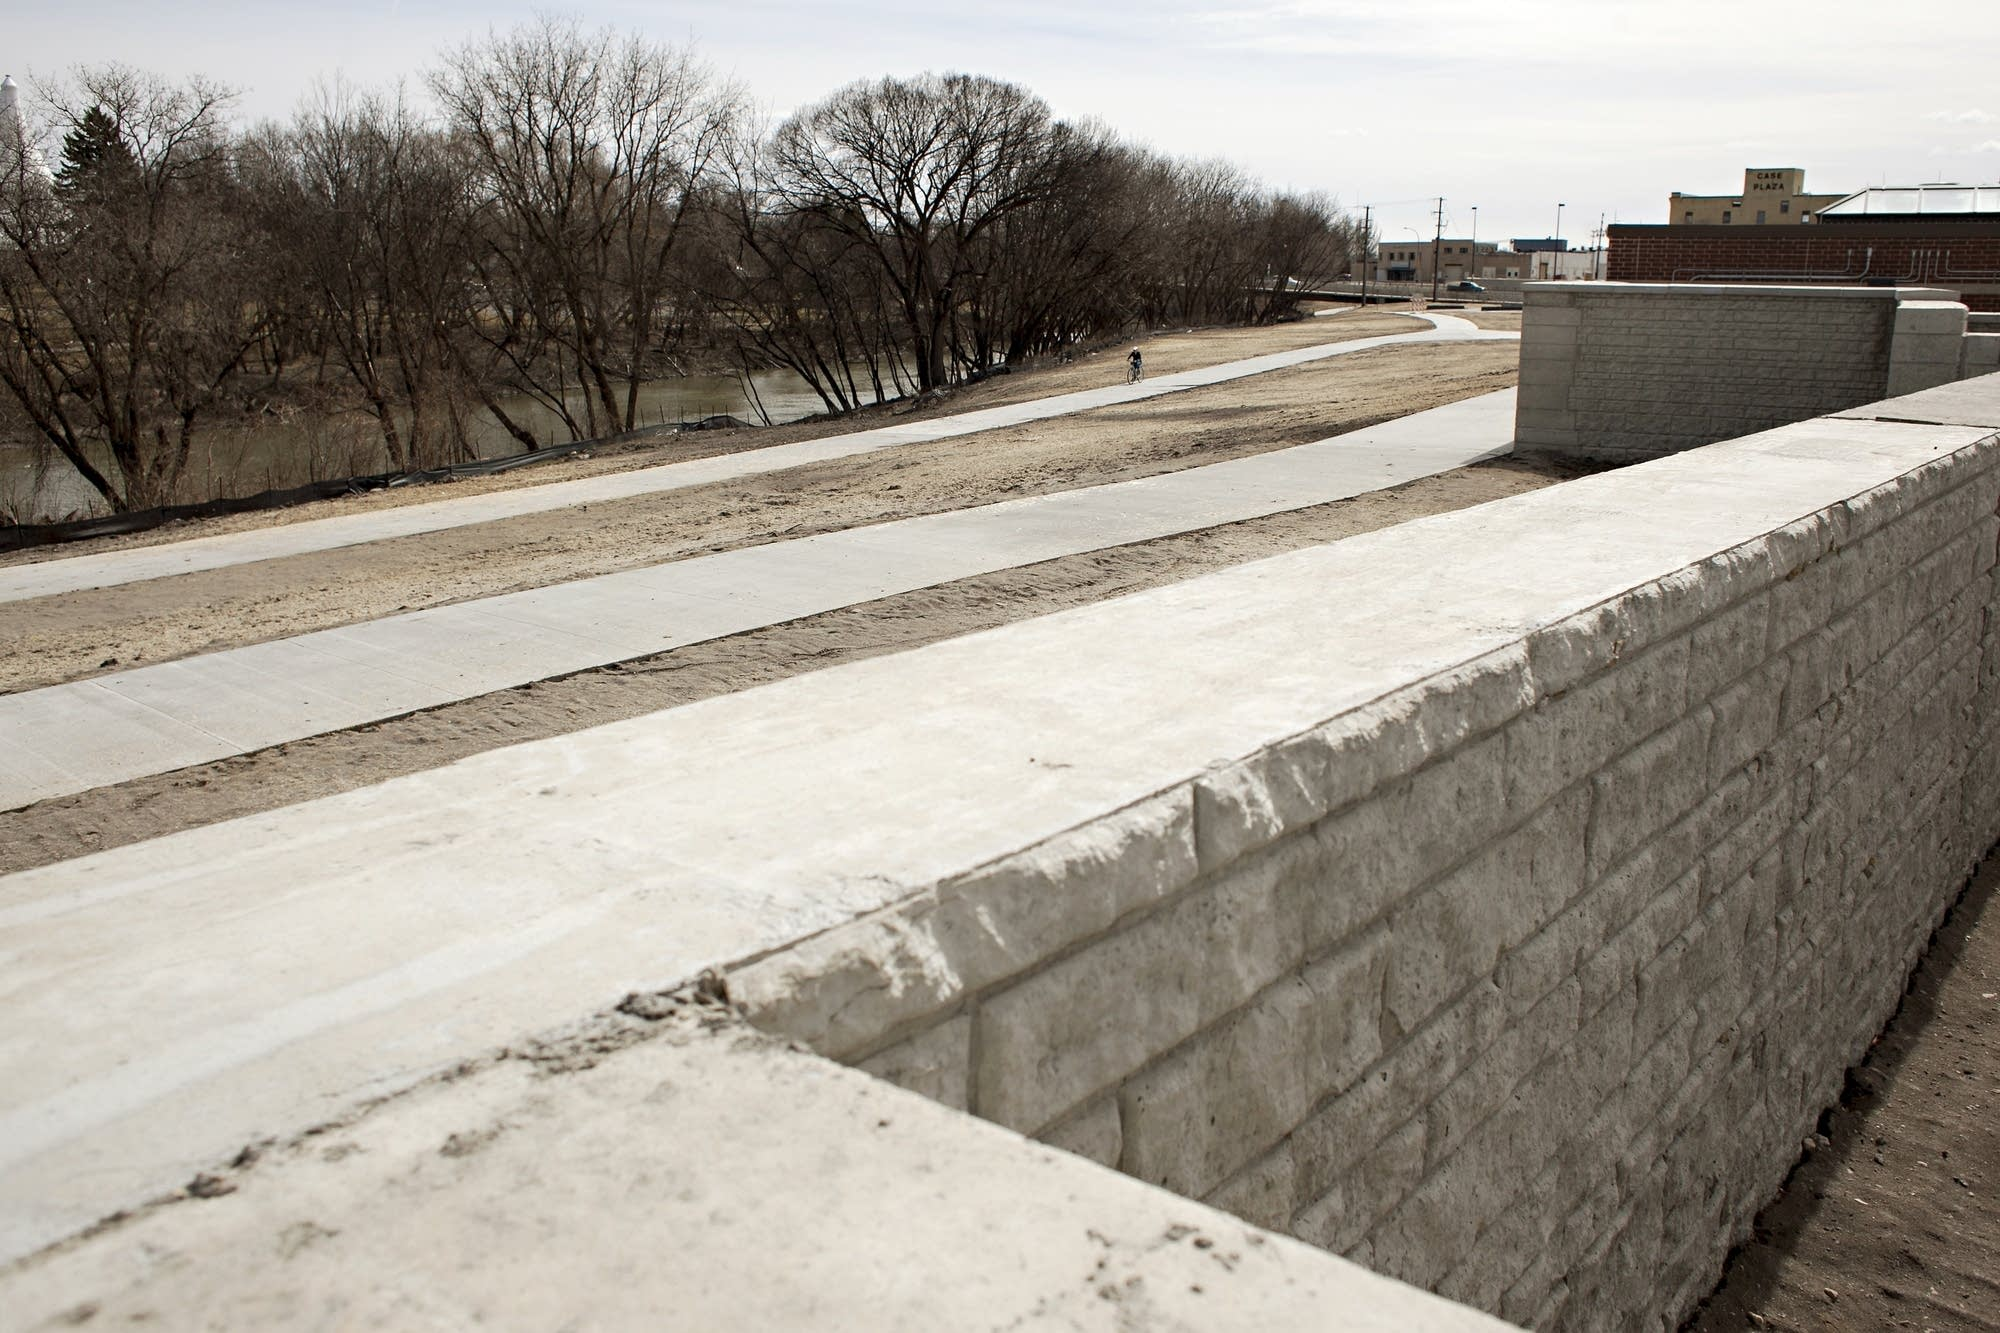 Recreation paths parallel to the Red River and a new flood wall